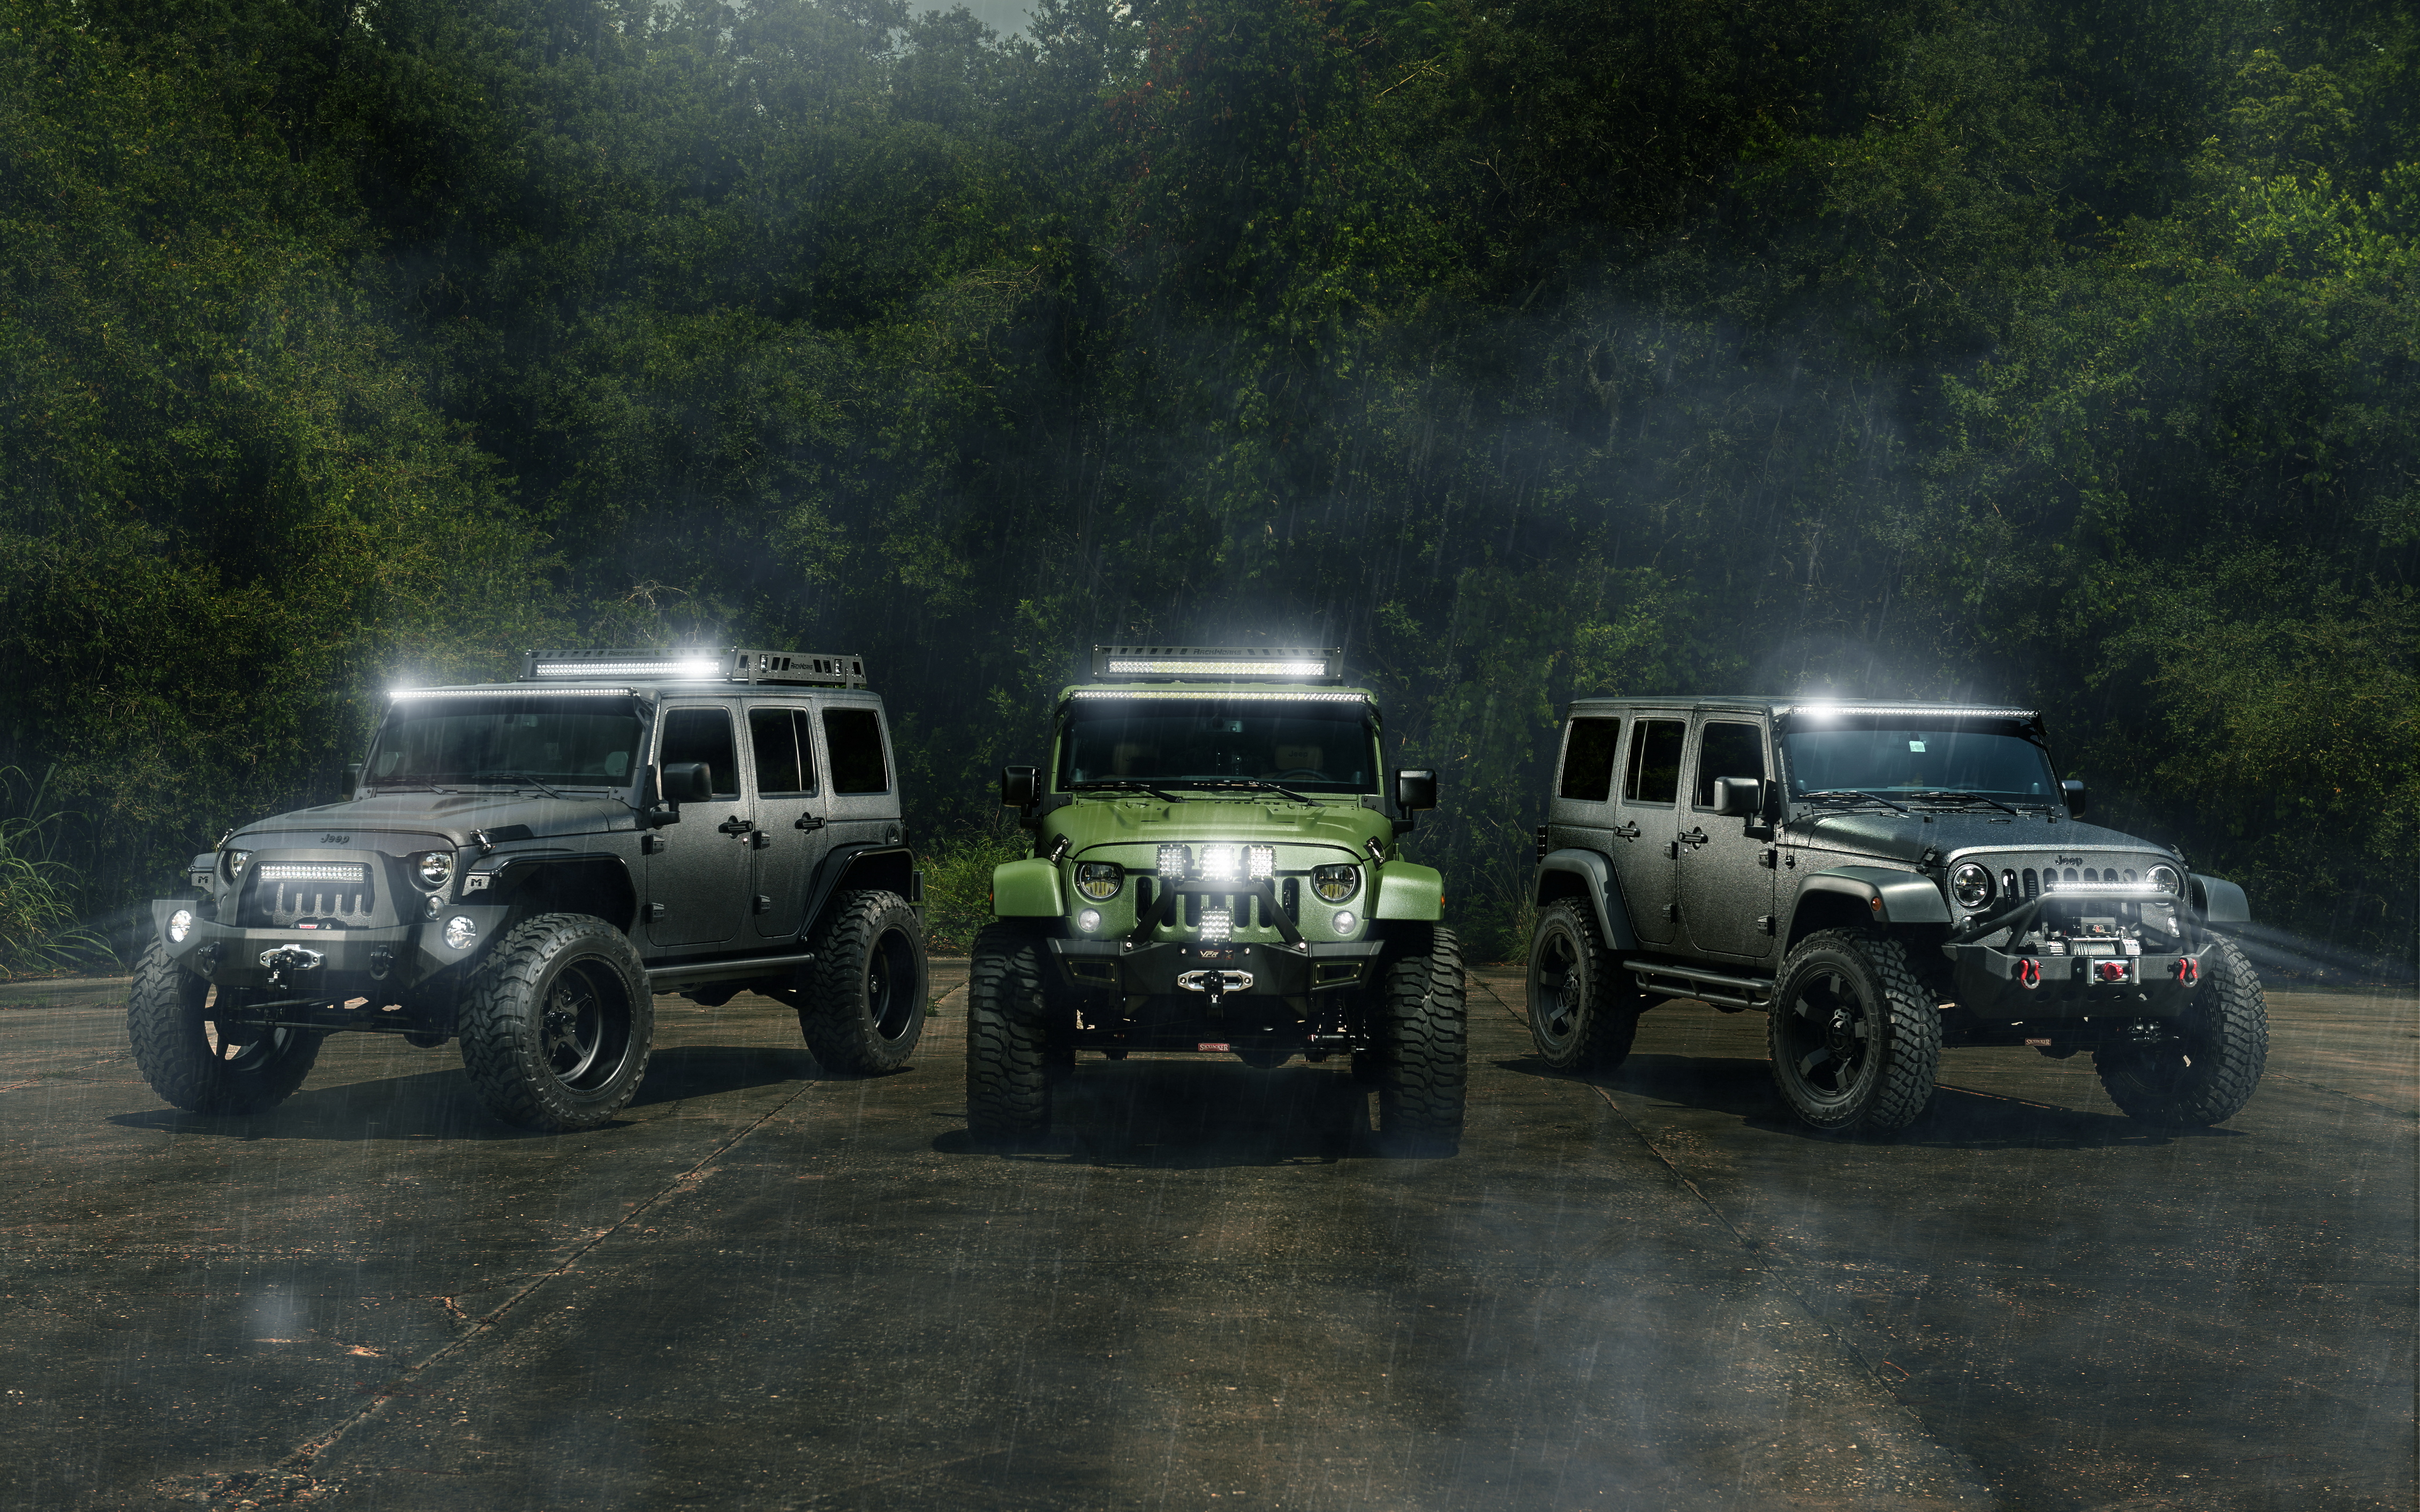 Jeep Wrangler Wallpaper - WallpaperSafari